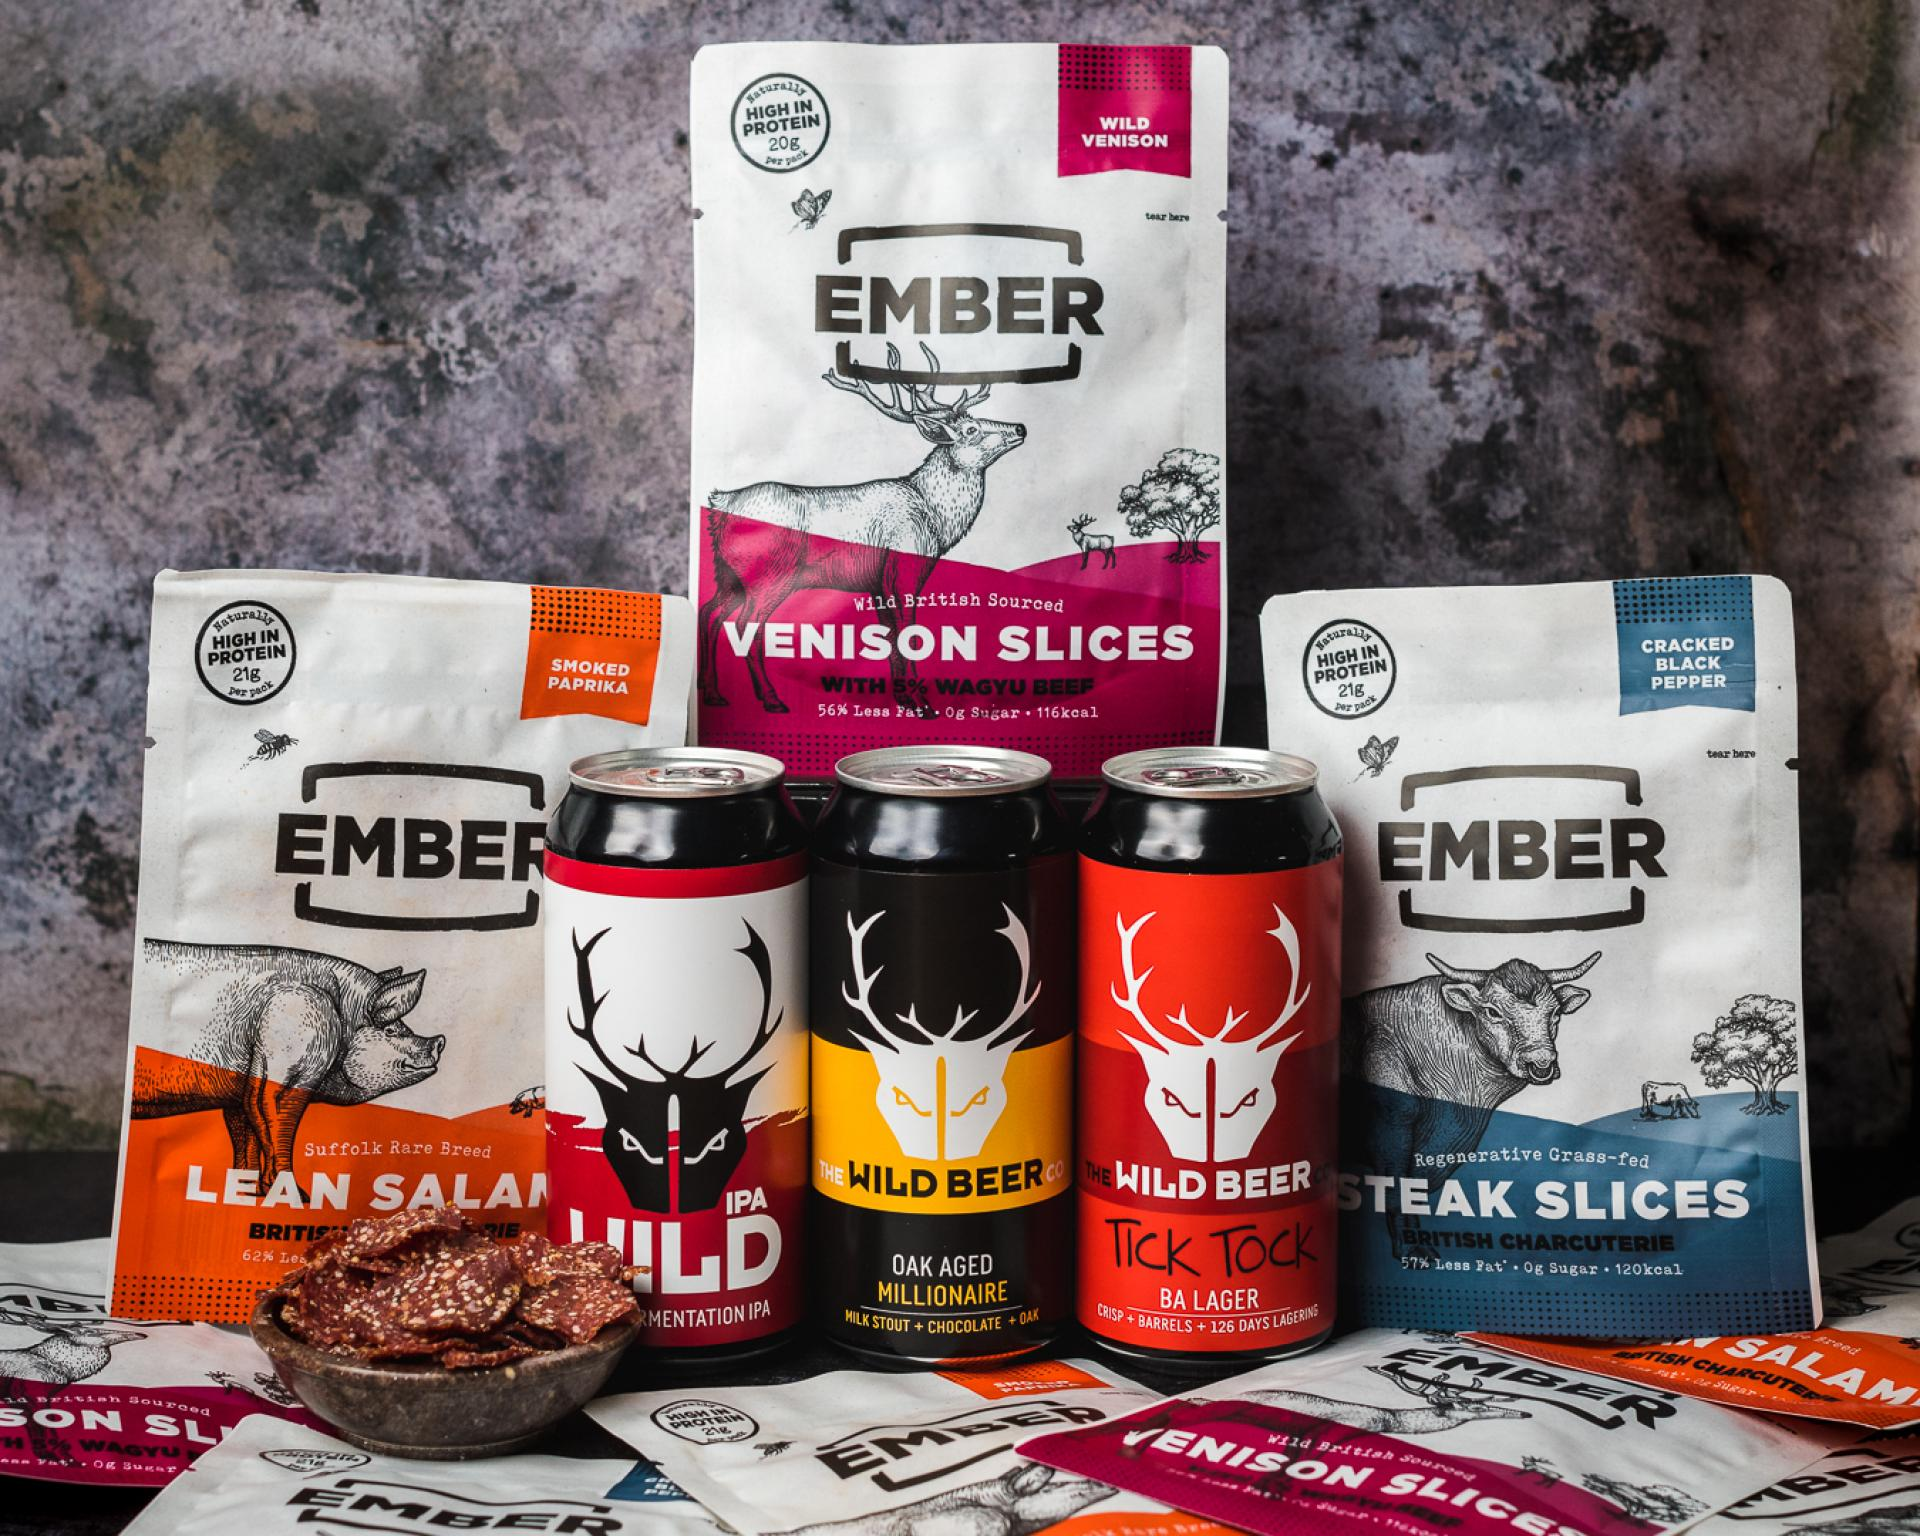 Father's Day 2021 gift guide: Ember x Wild Beer co